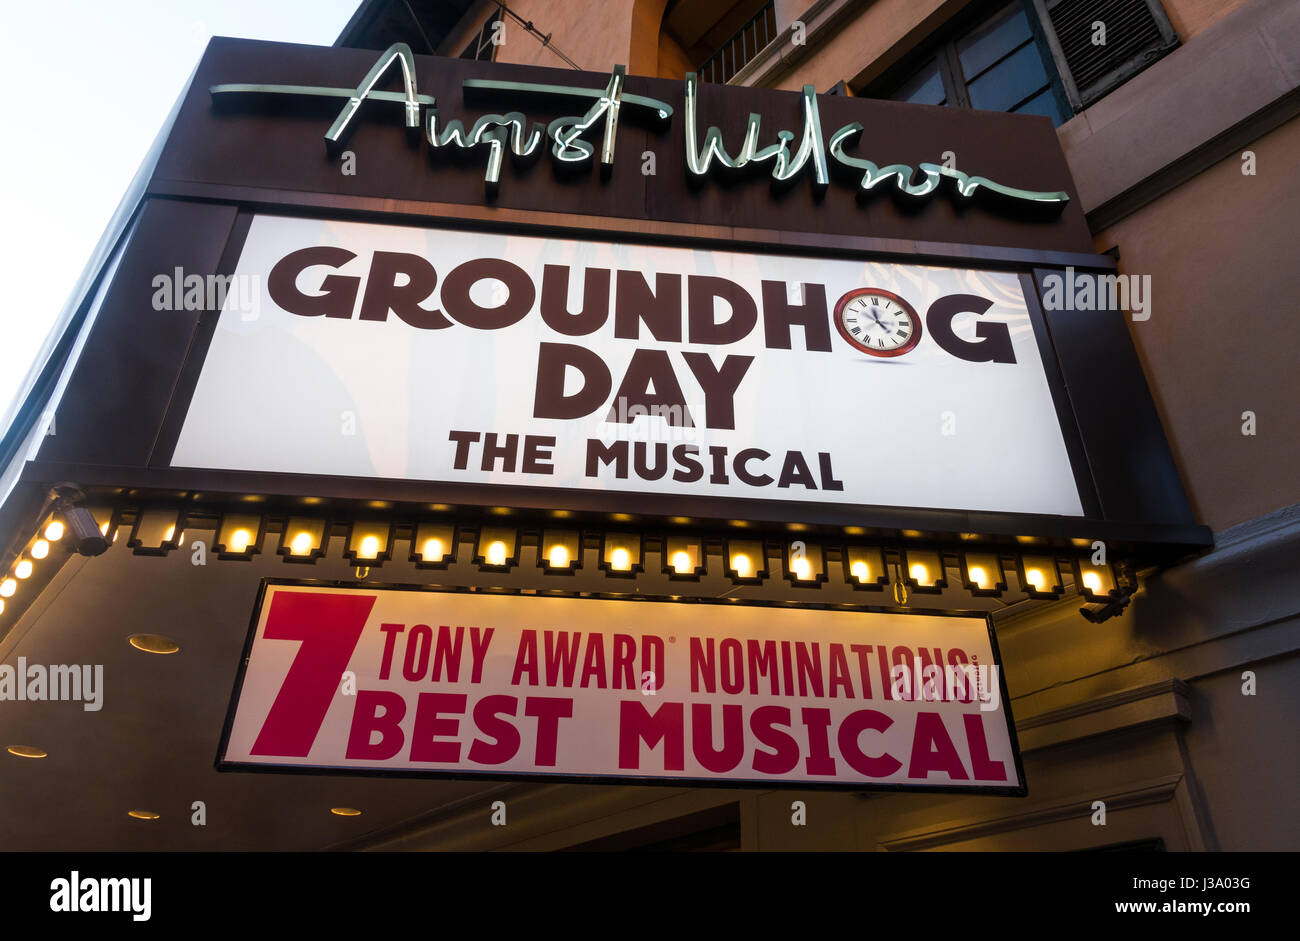 groundhog day the musical at the august wilson theatre on broadway